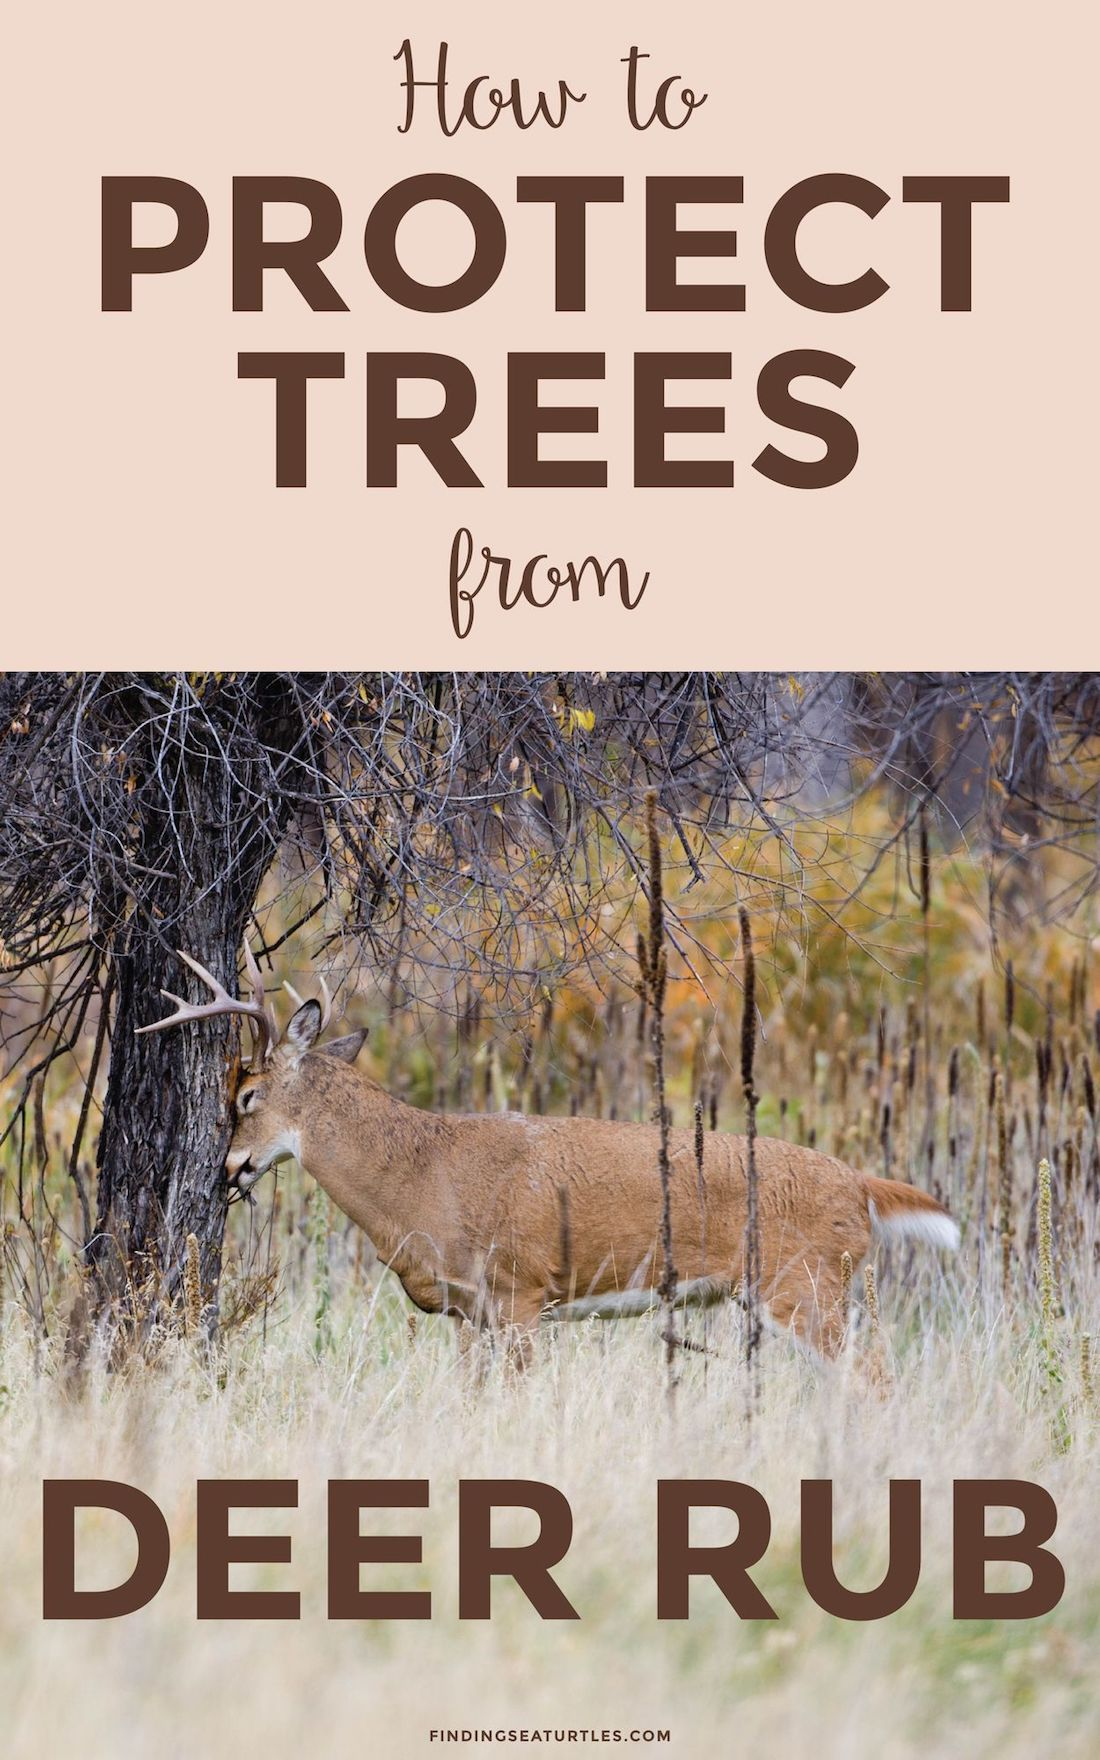 How To Protect Trees From Deer Rub